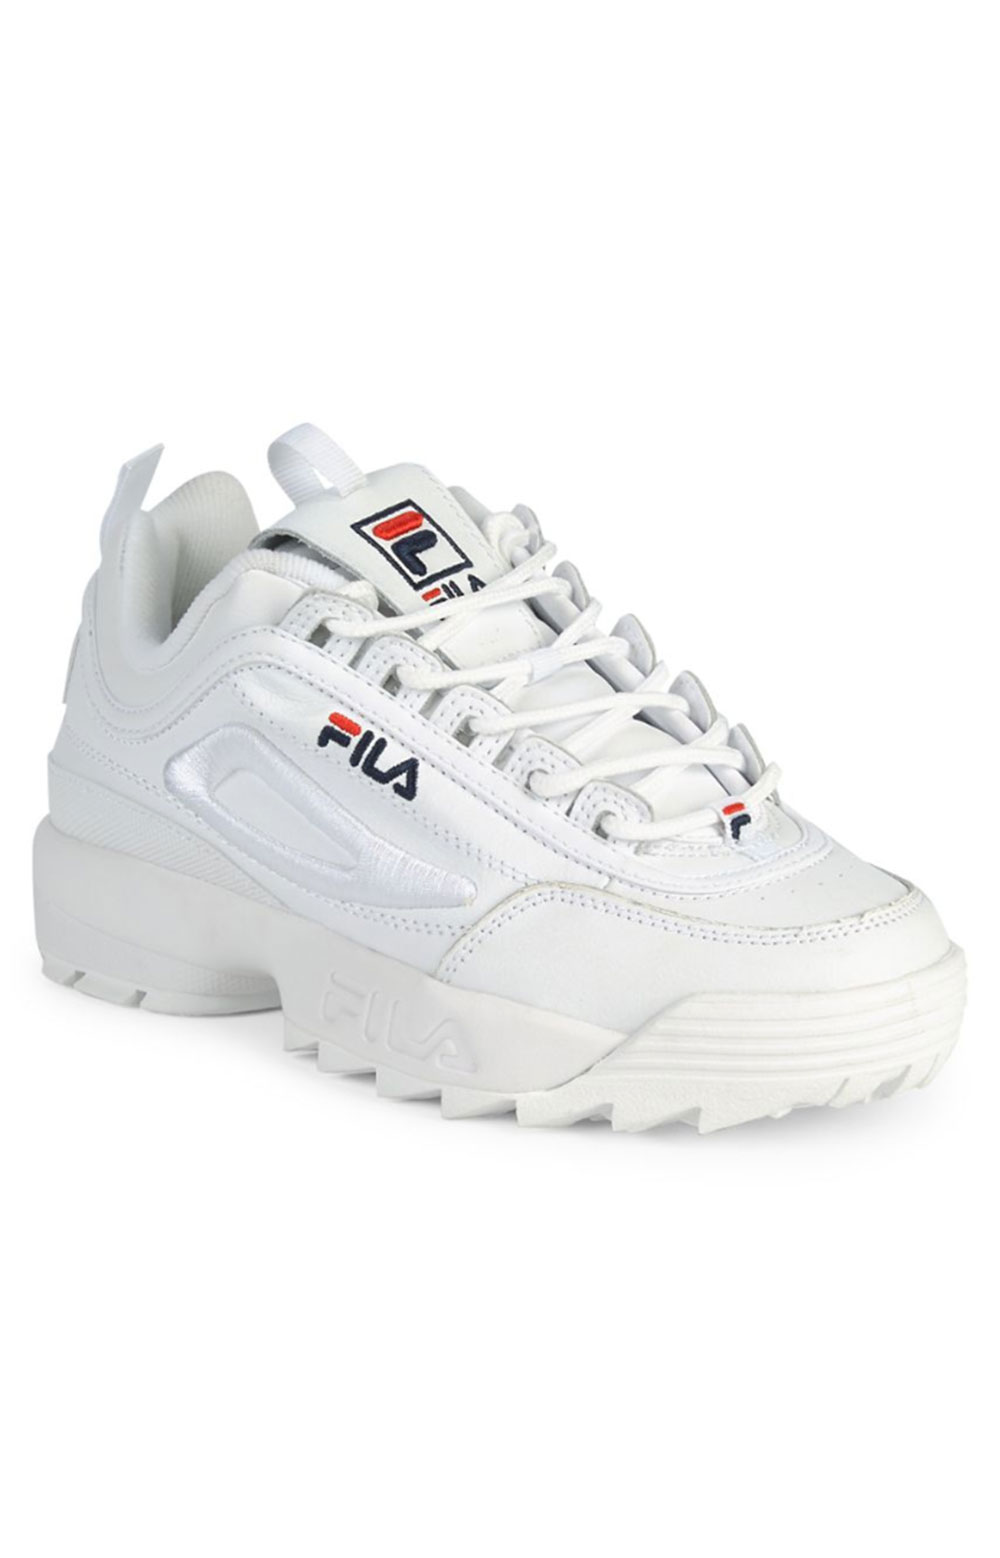 Disruptor II 3D Embroider Shoes - White/Navy/Red 2